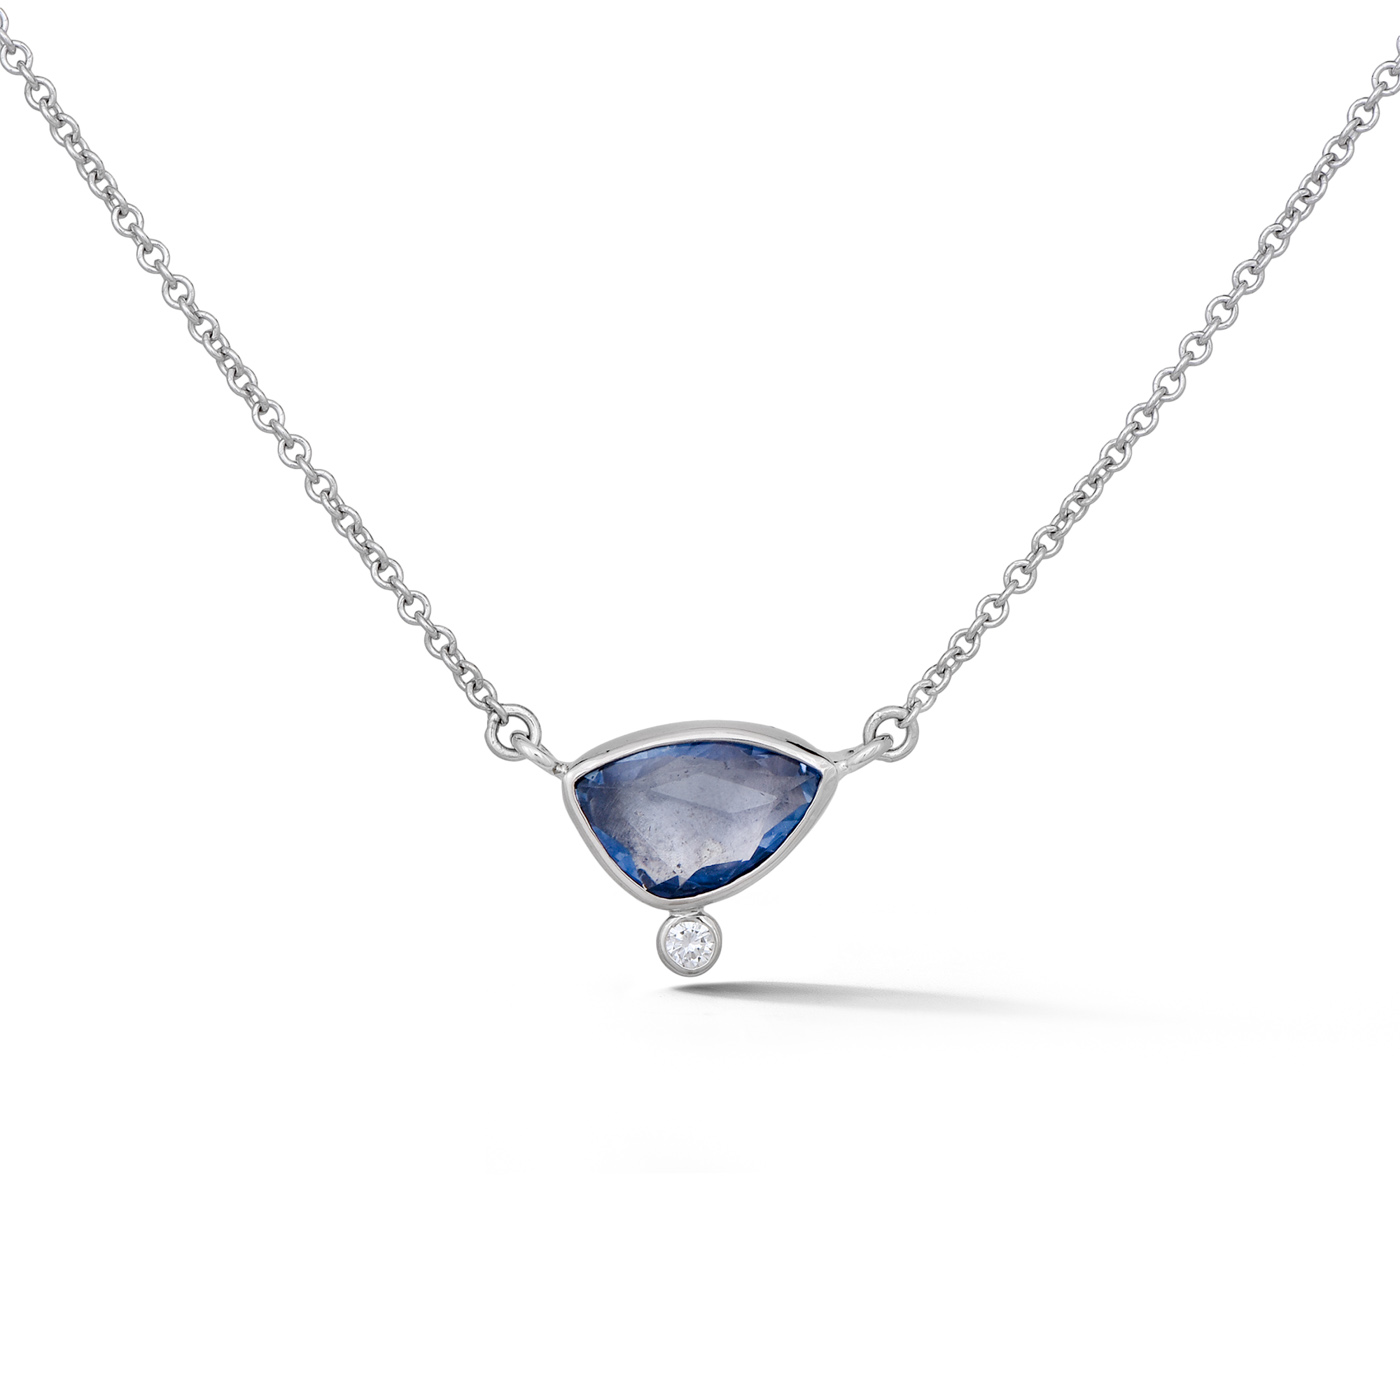 Rose Cut Sapphire and Diamond split chain necklace